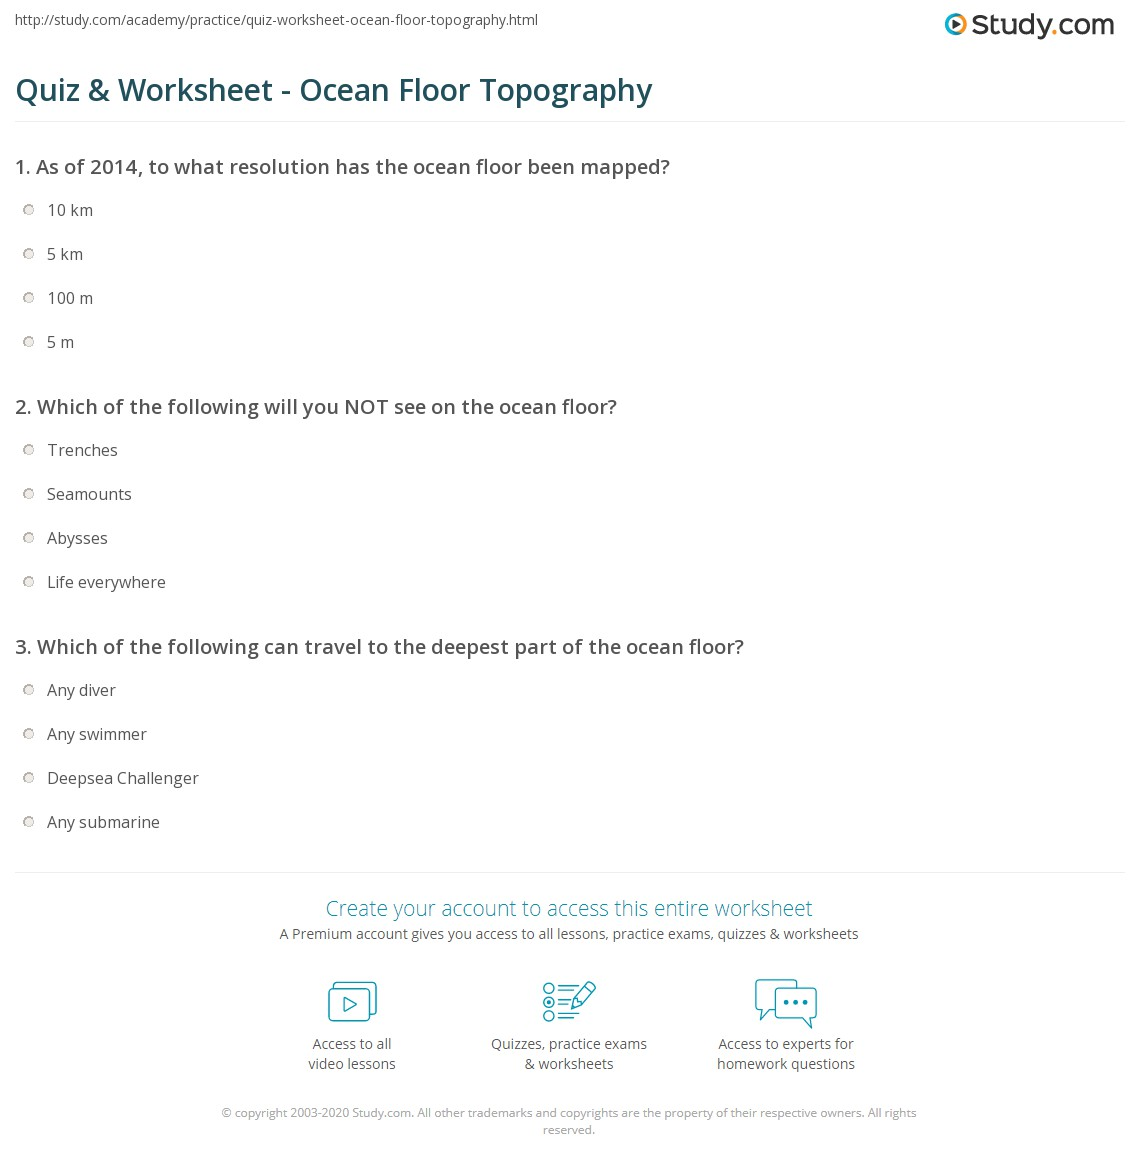 Quiz & Worksheet Ocean Floor Topography